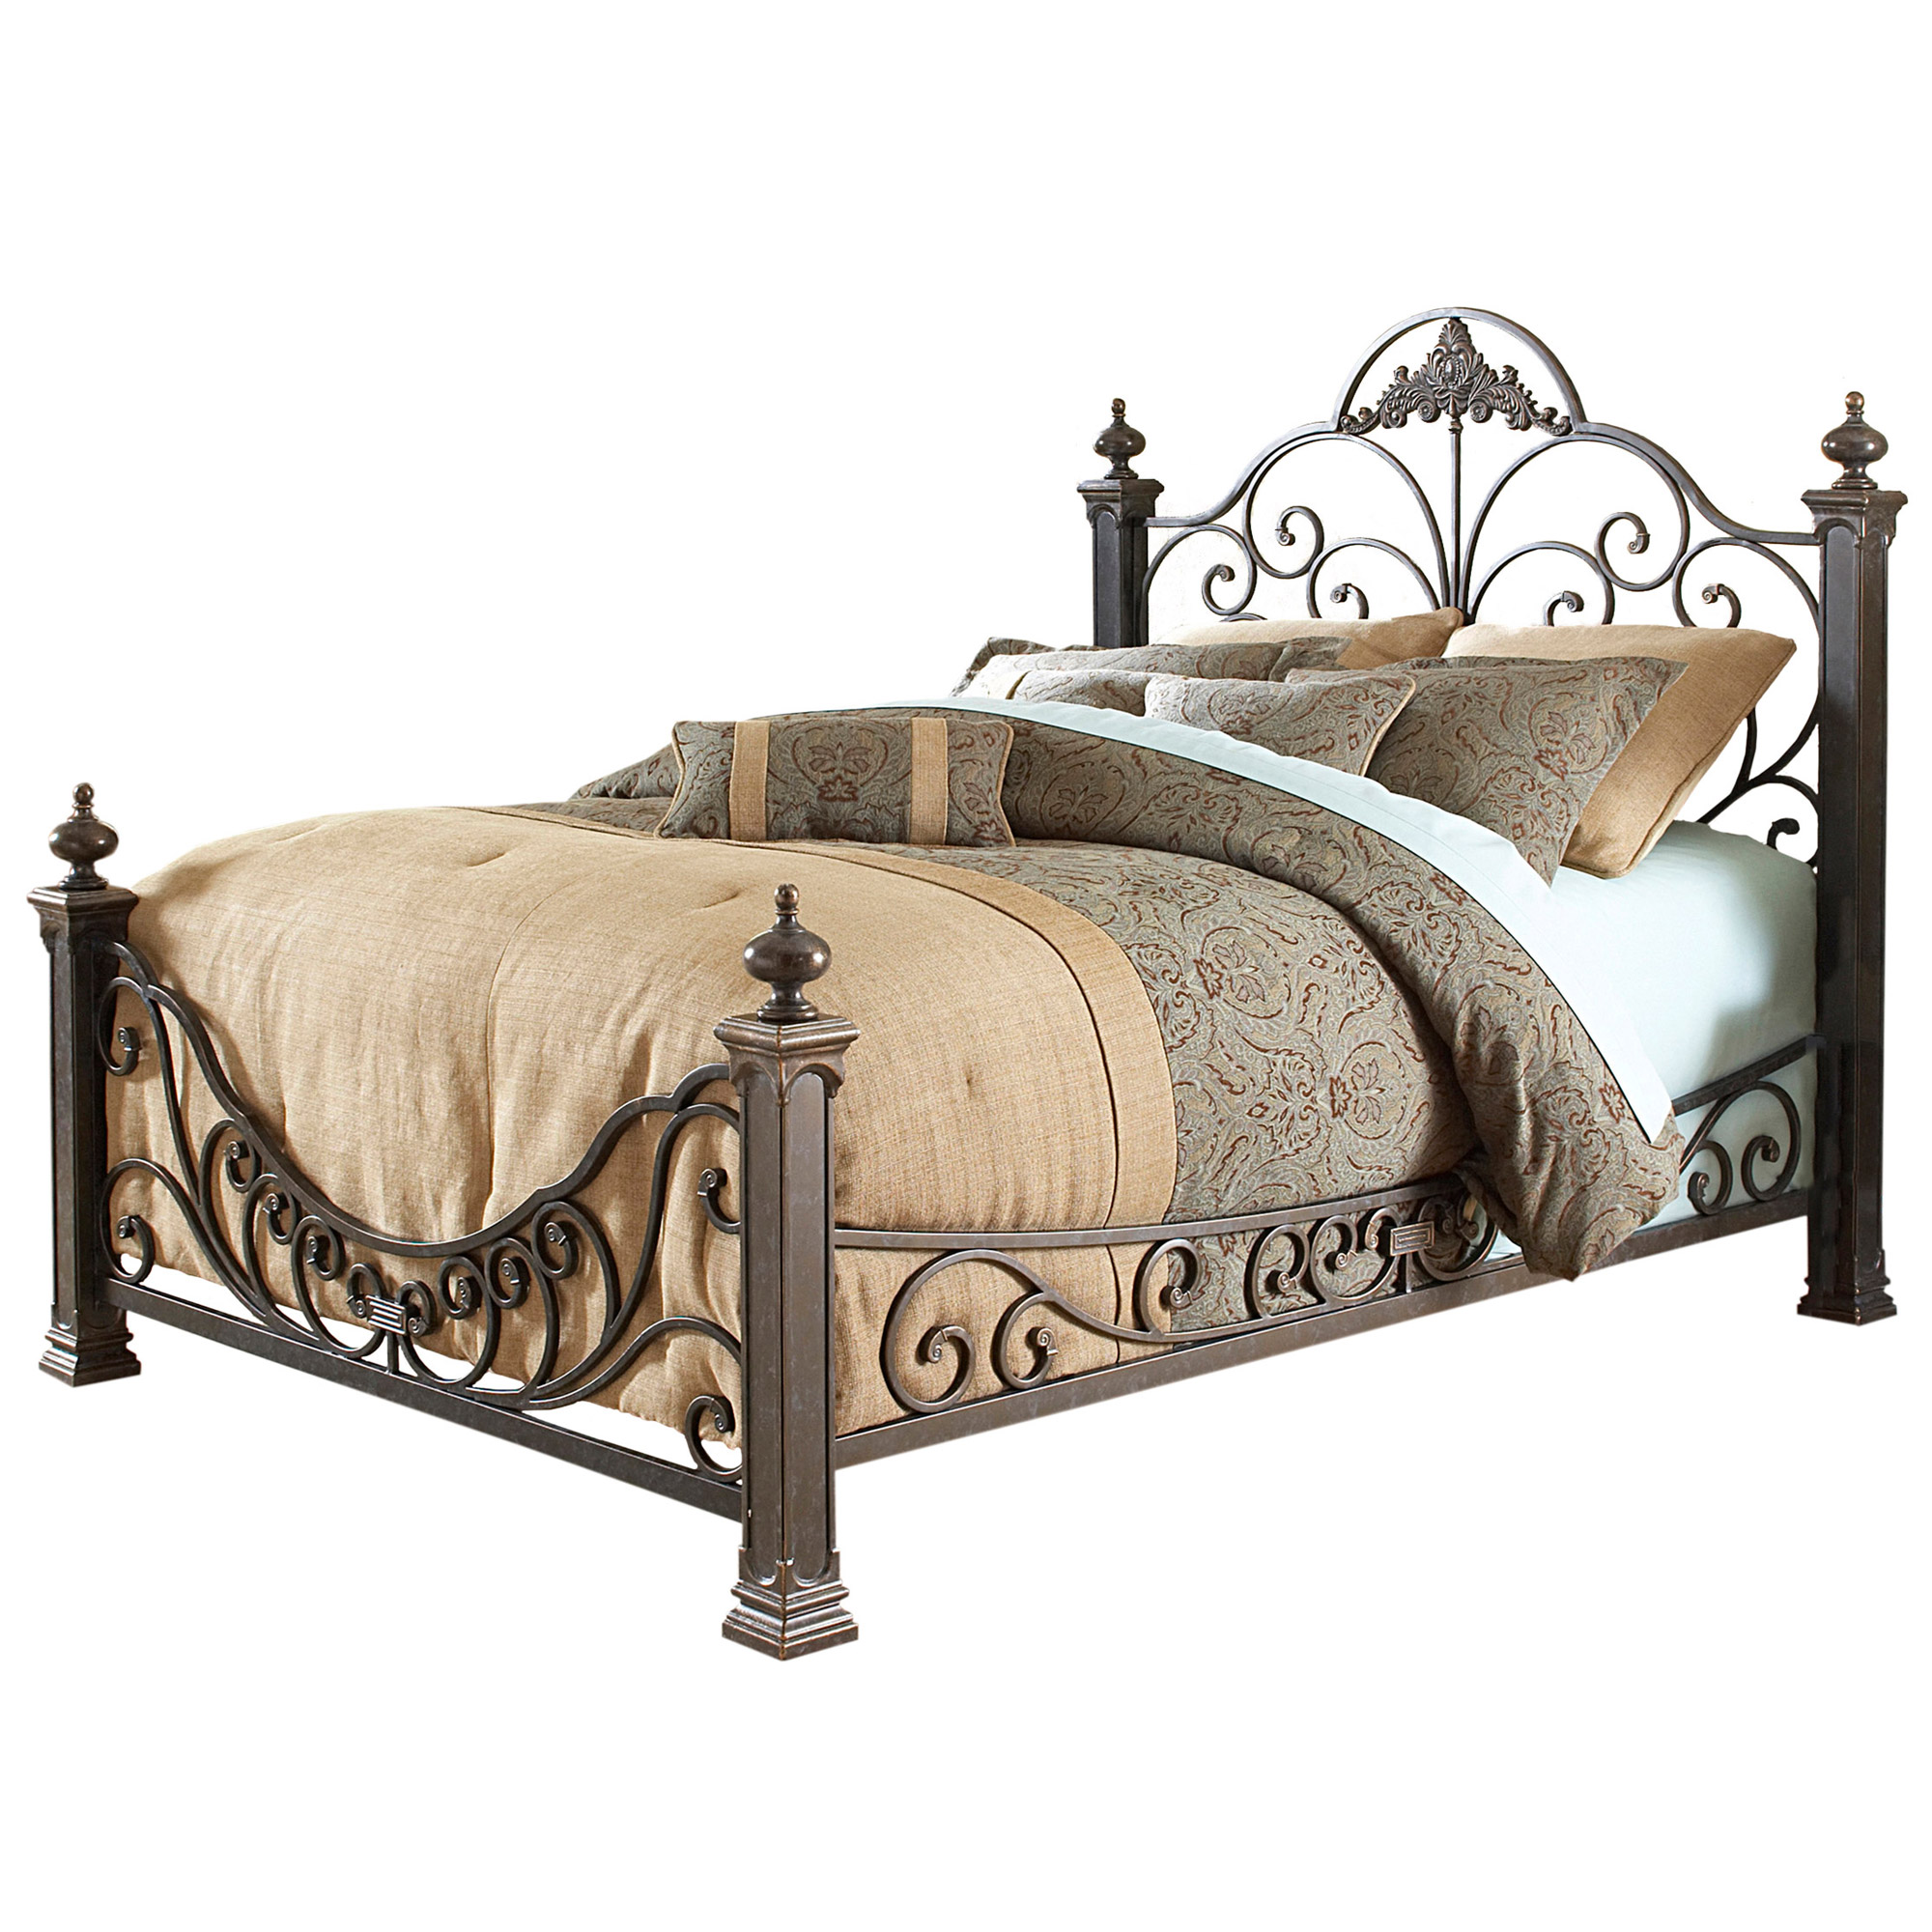 frames allen code frame co abode bed to homebase footboard d metal braden wrought iron humble how qtsi whitney hs by wesley headboard